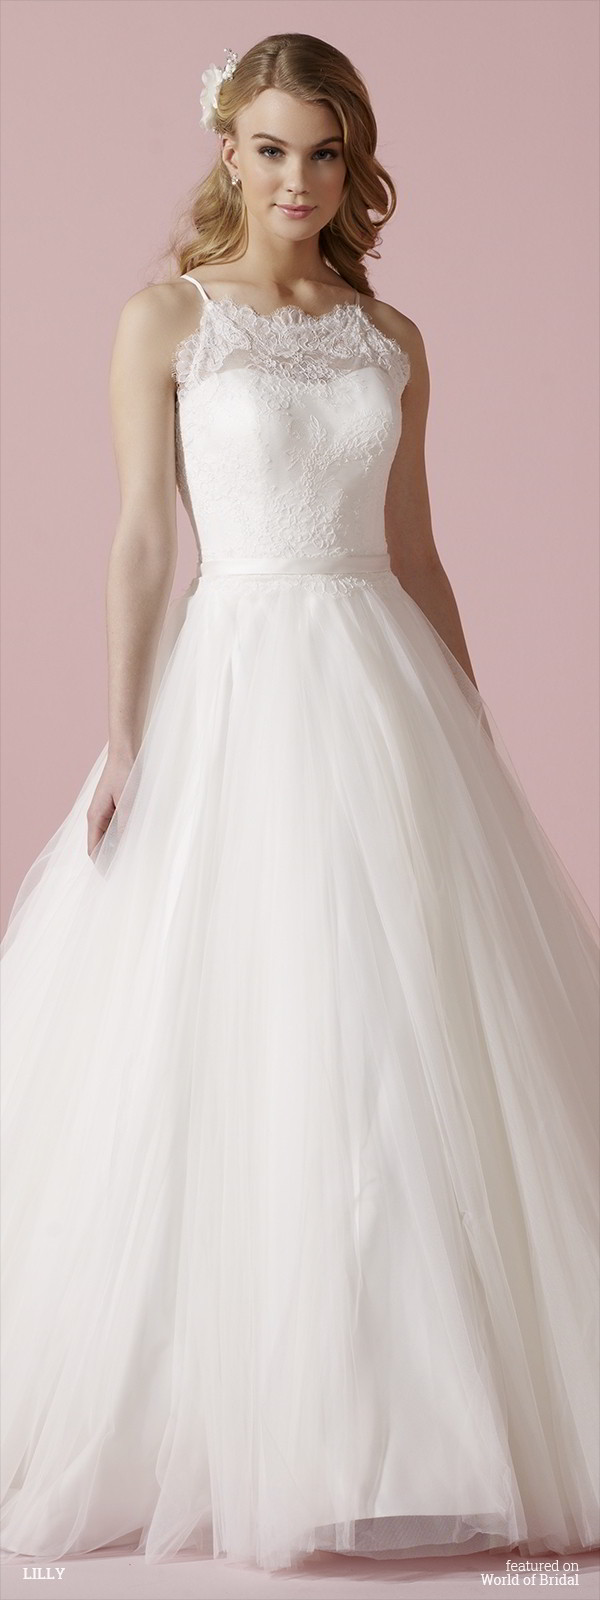 Lilly 2016 Wedding Dress